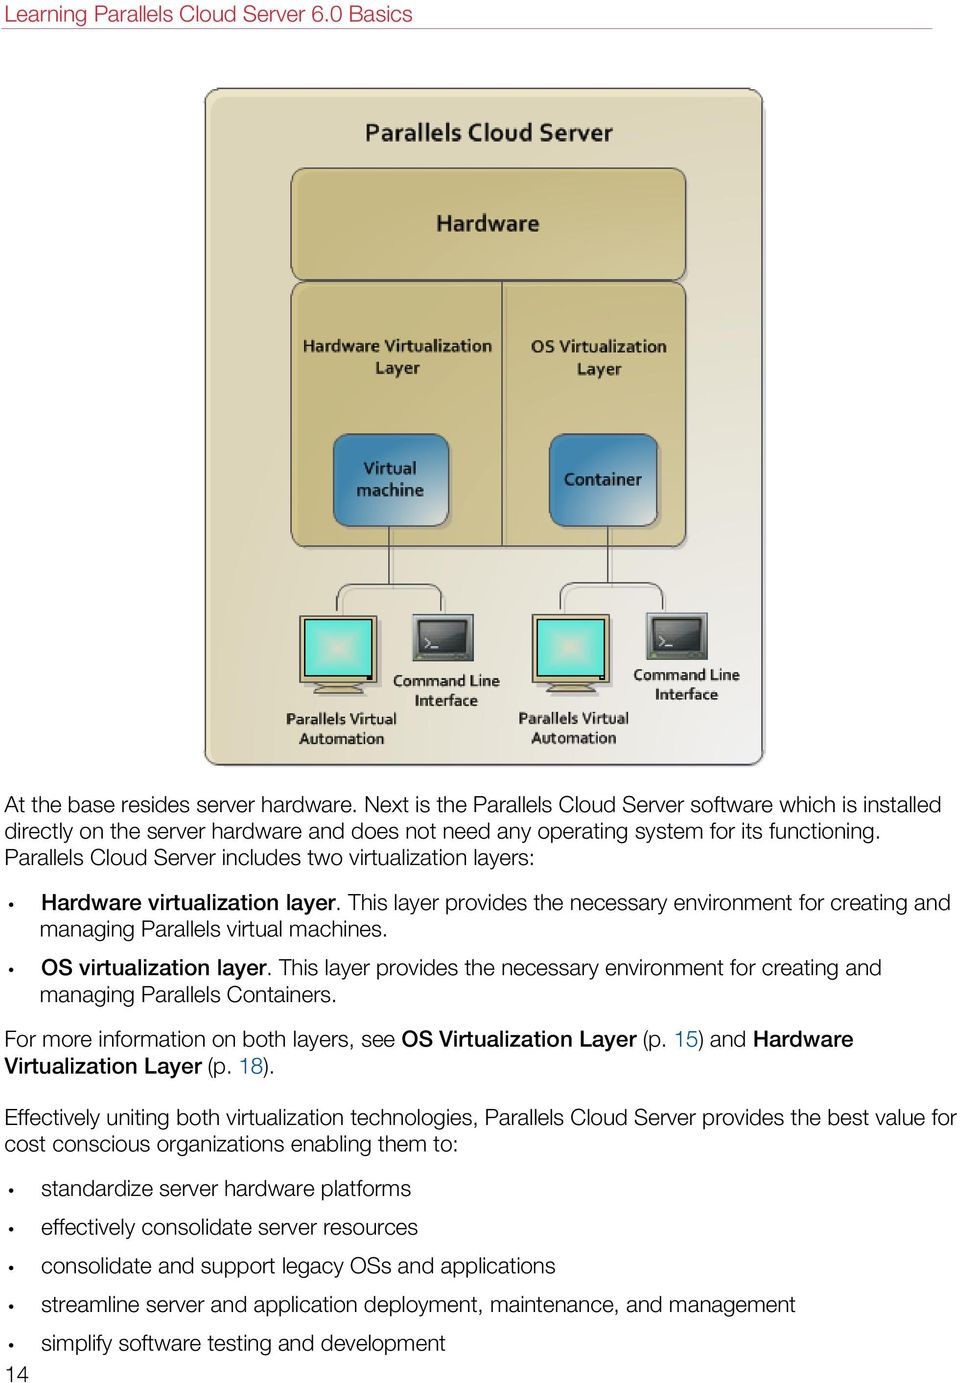 Parallels Cloud Server includes two virtualization layers: Hardware virtualization layer. This layer provides the necessary environment for creating and managing Parallels virtual machines.